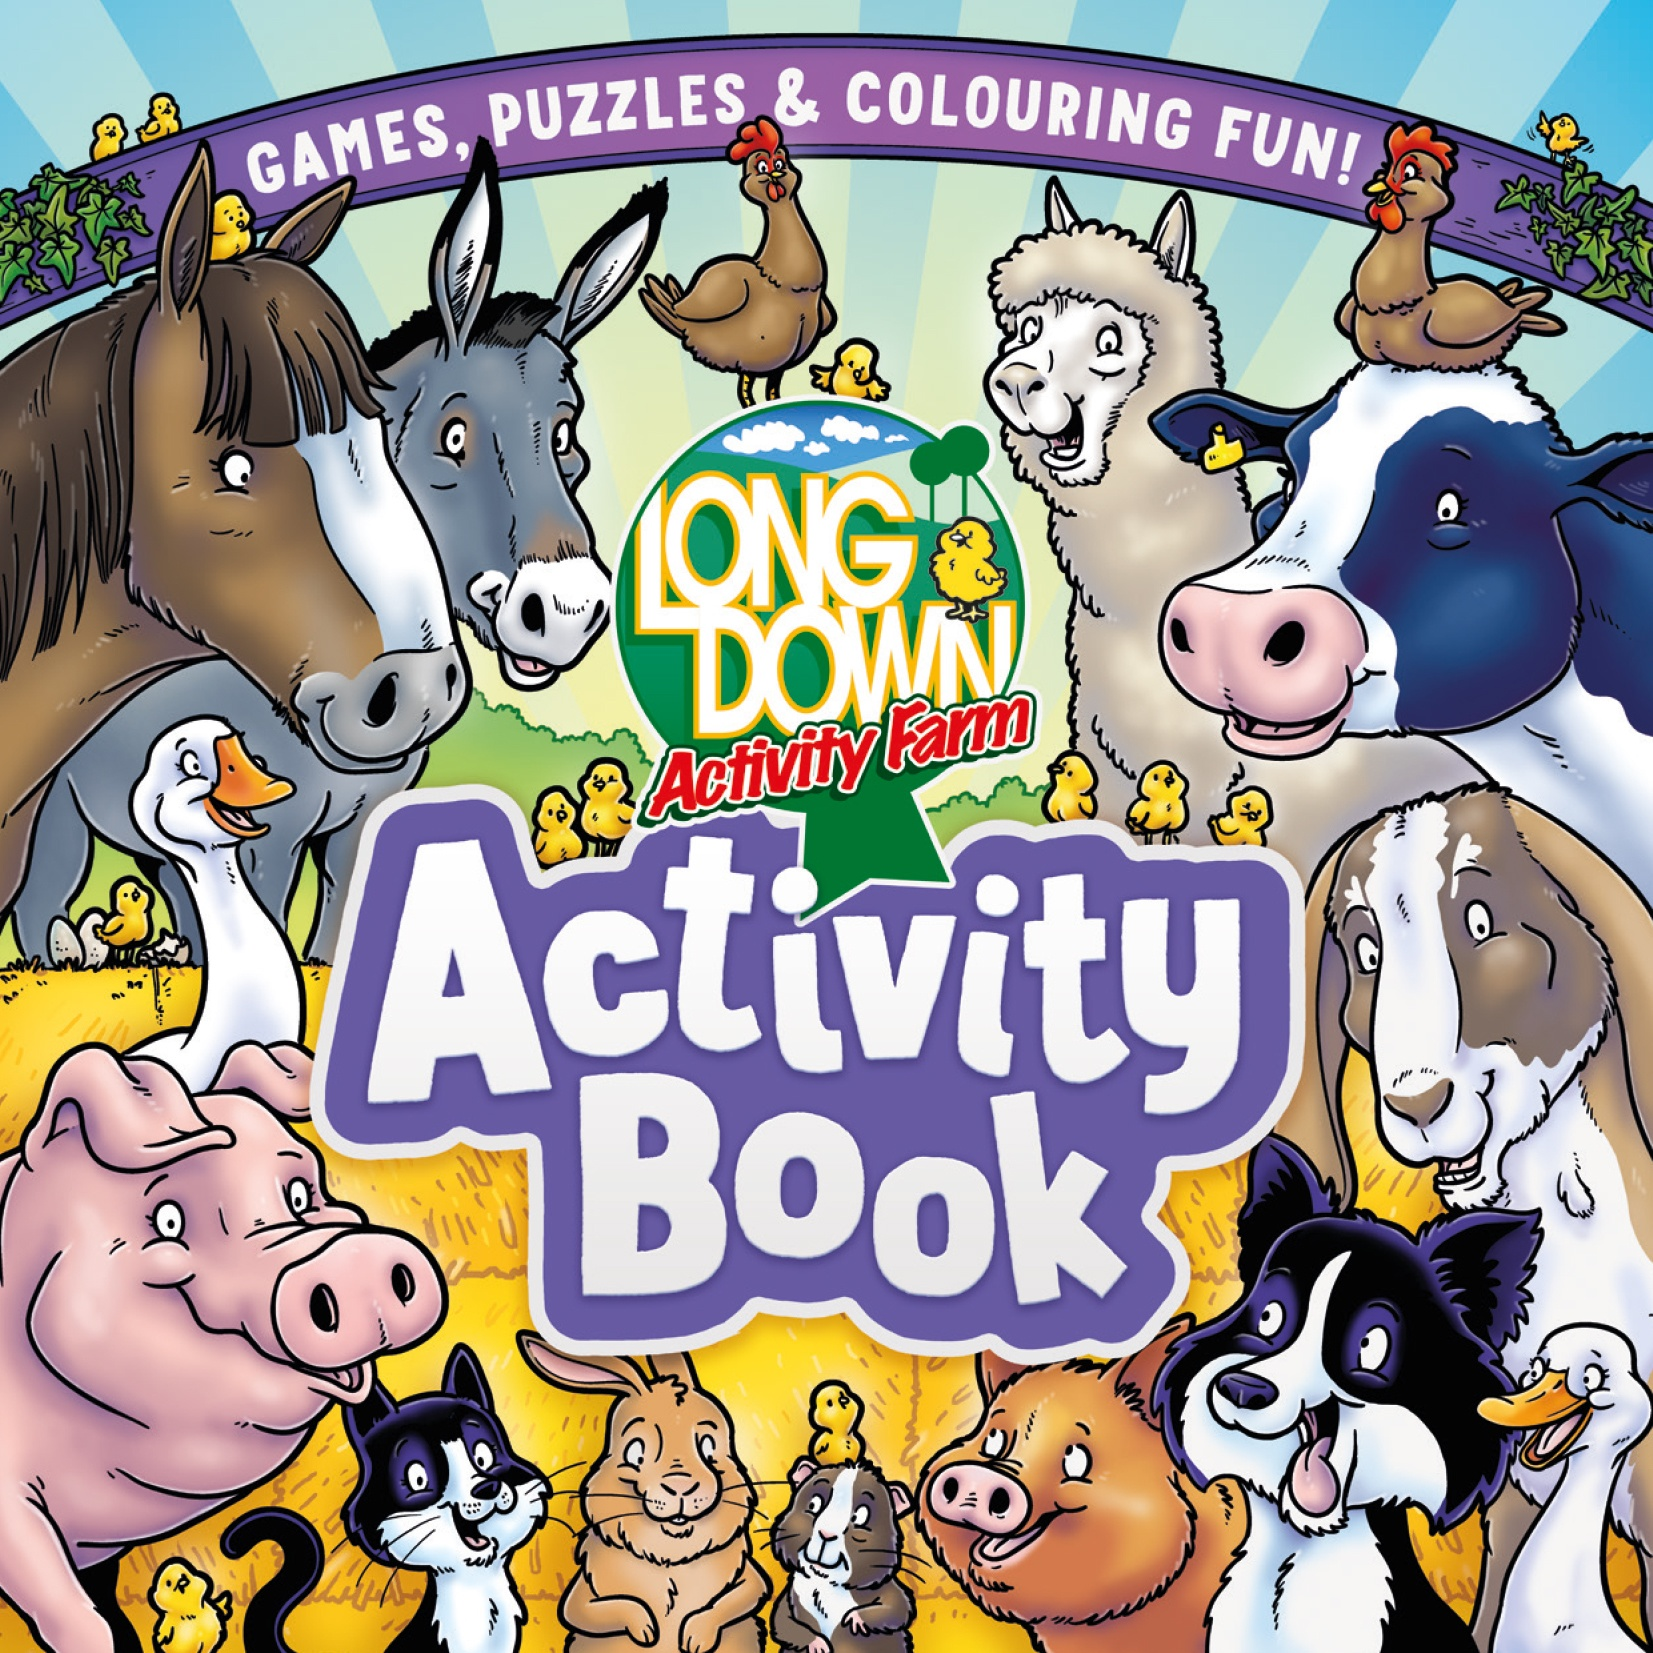 Cover for Longdown Activity Farm Activity Book